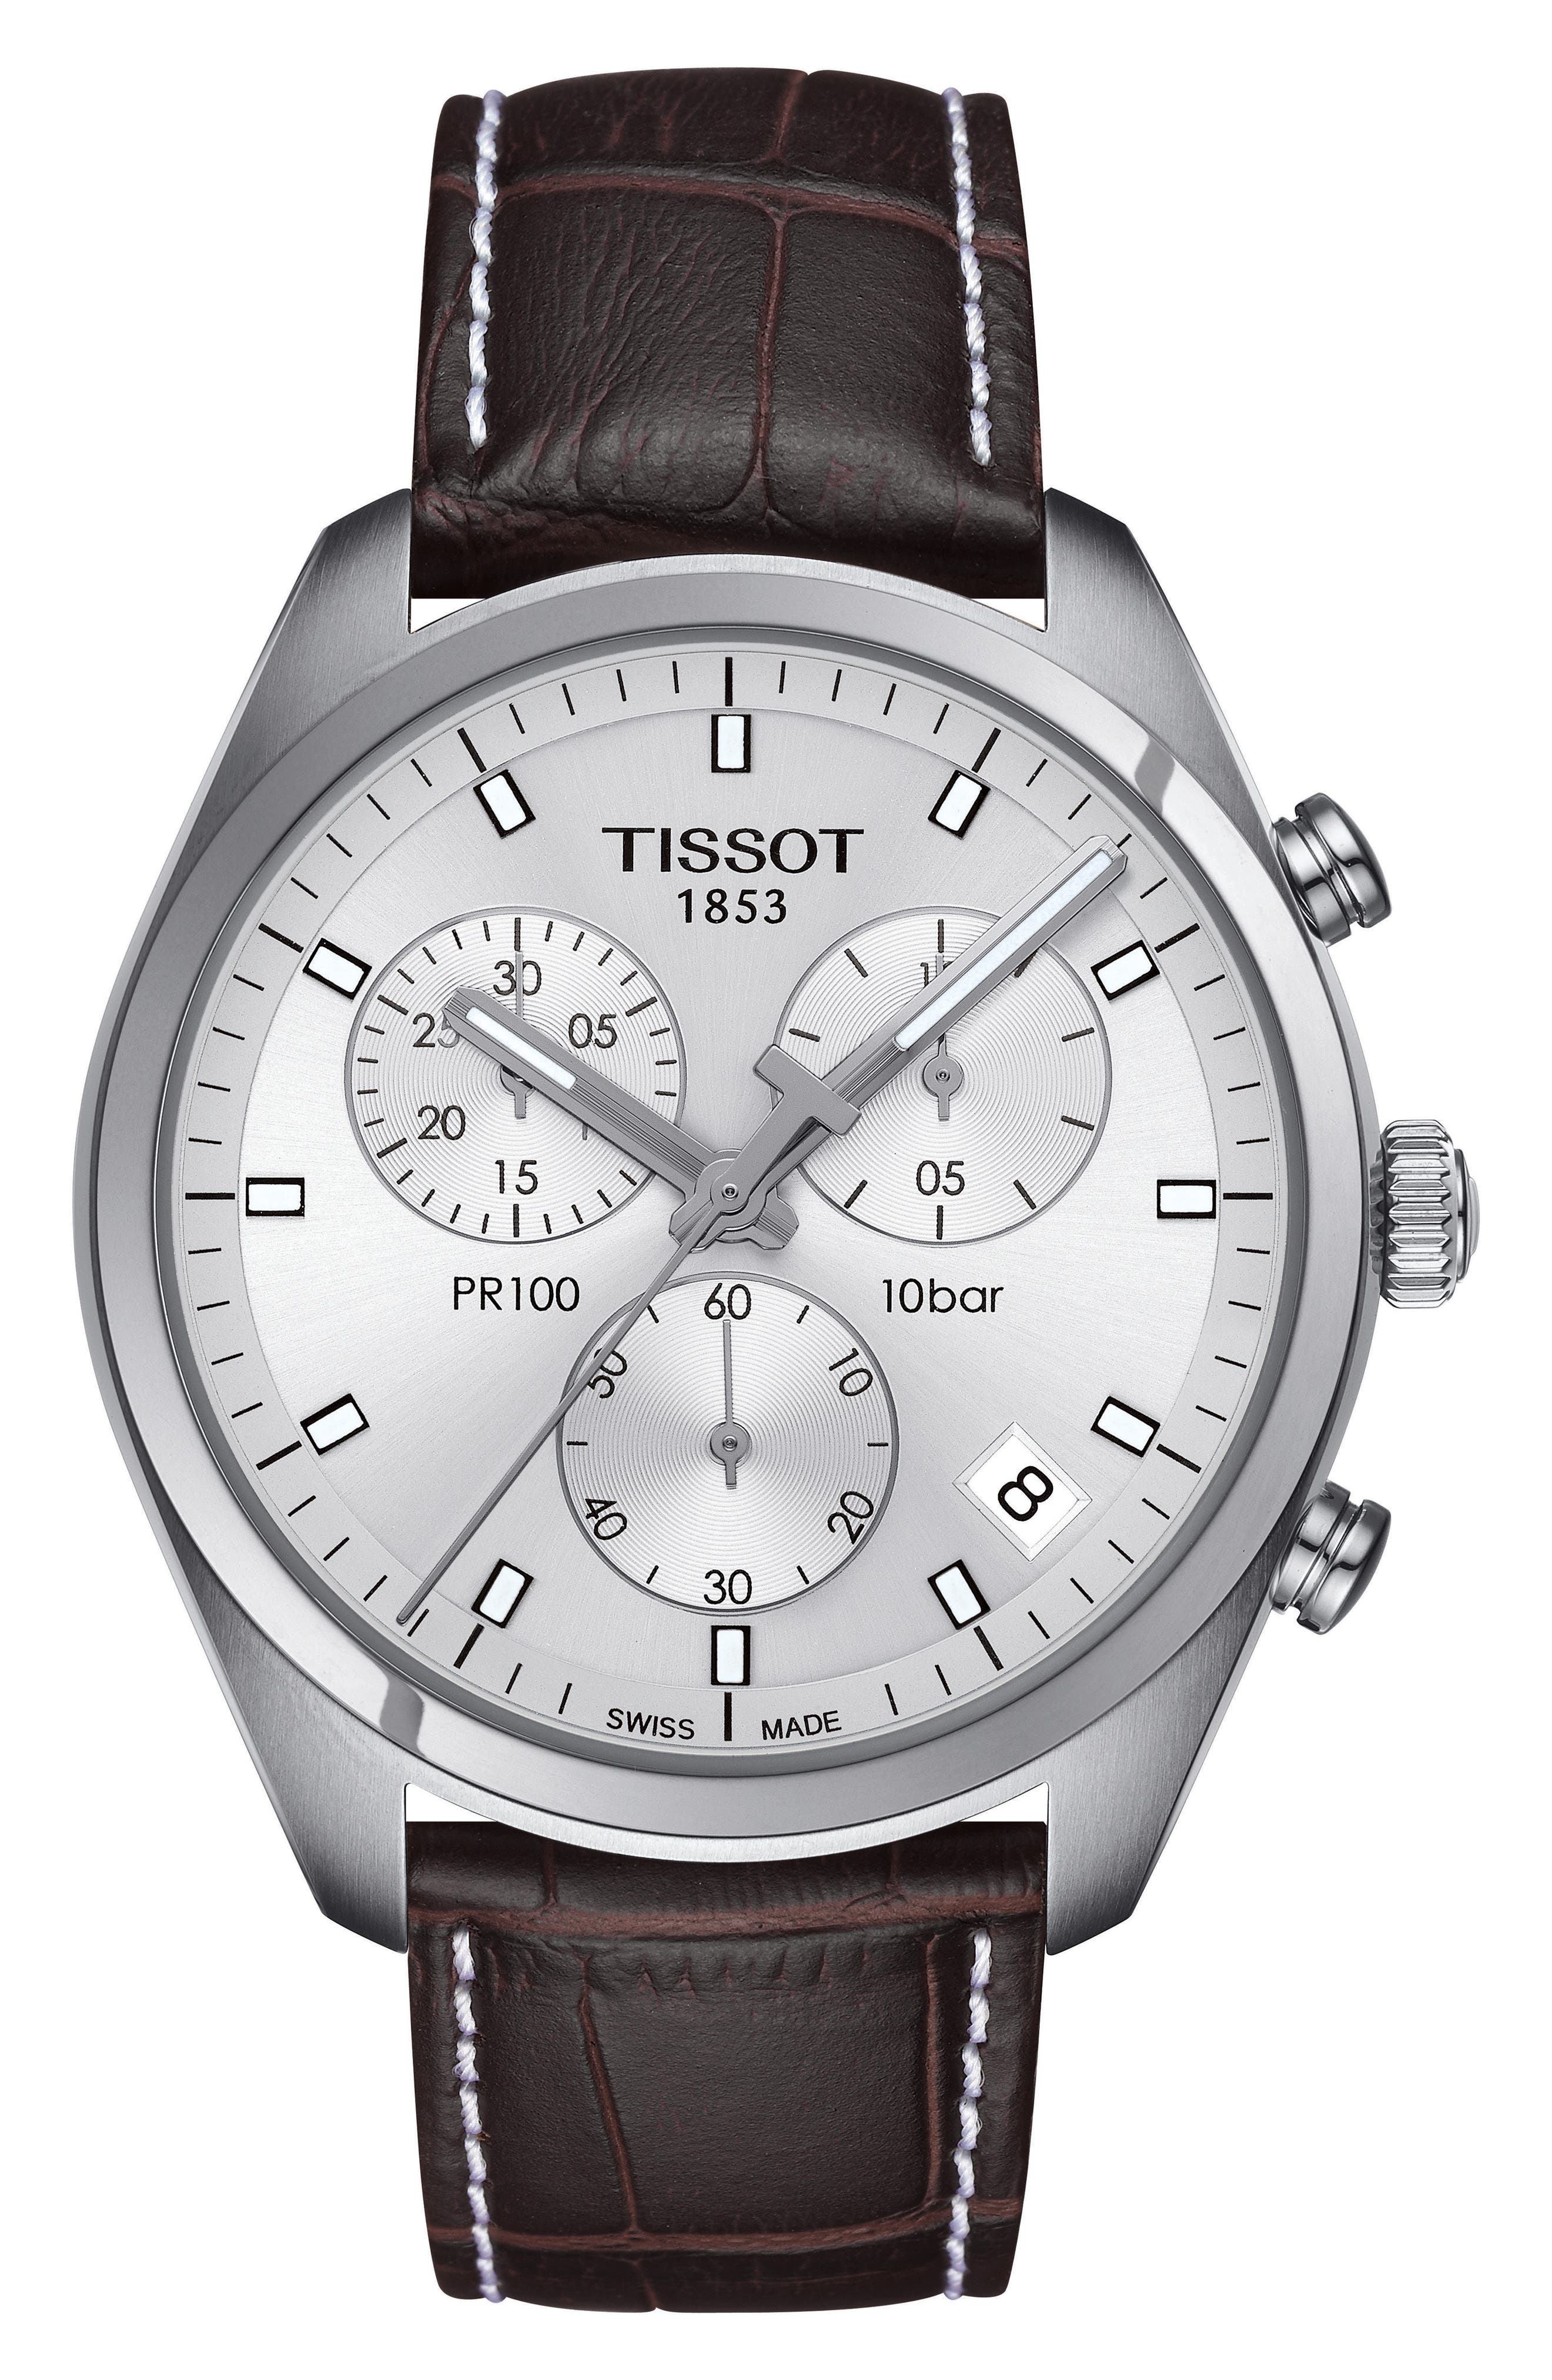 Alternate Image 1 Selected - Tissot PR100 Chronograph Leather Strap Watch, 41mm